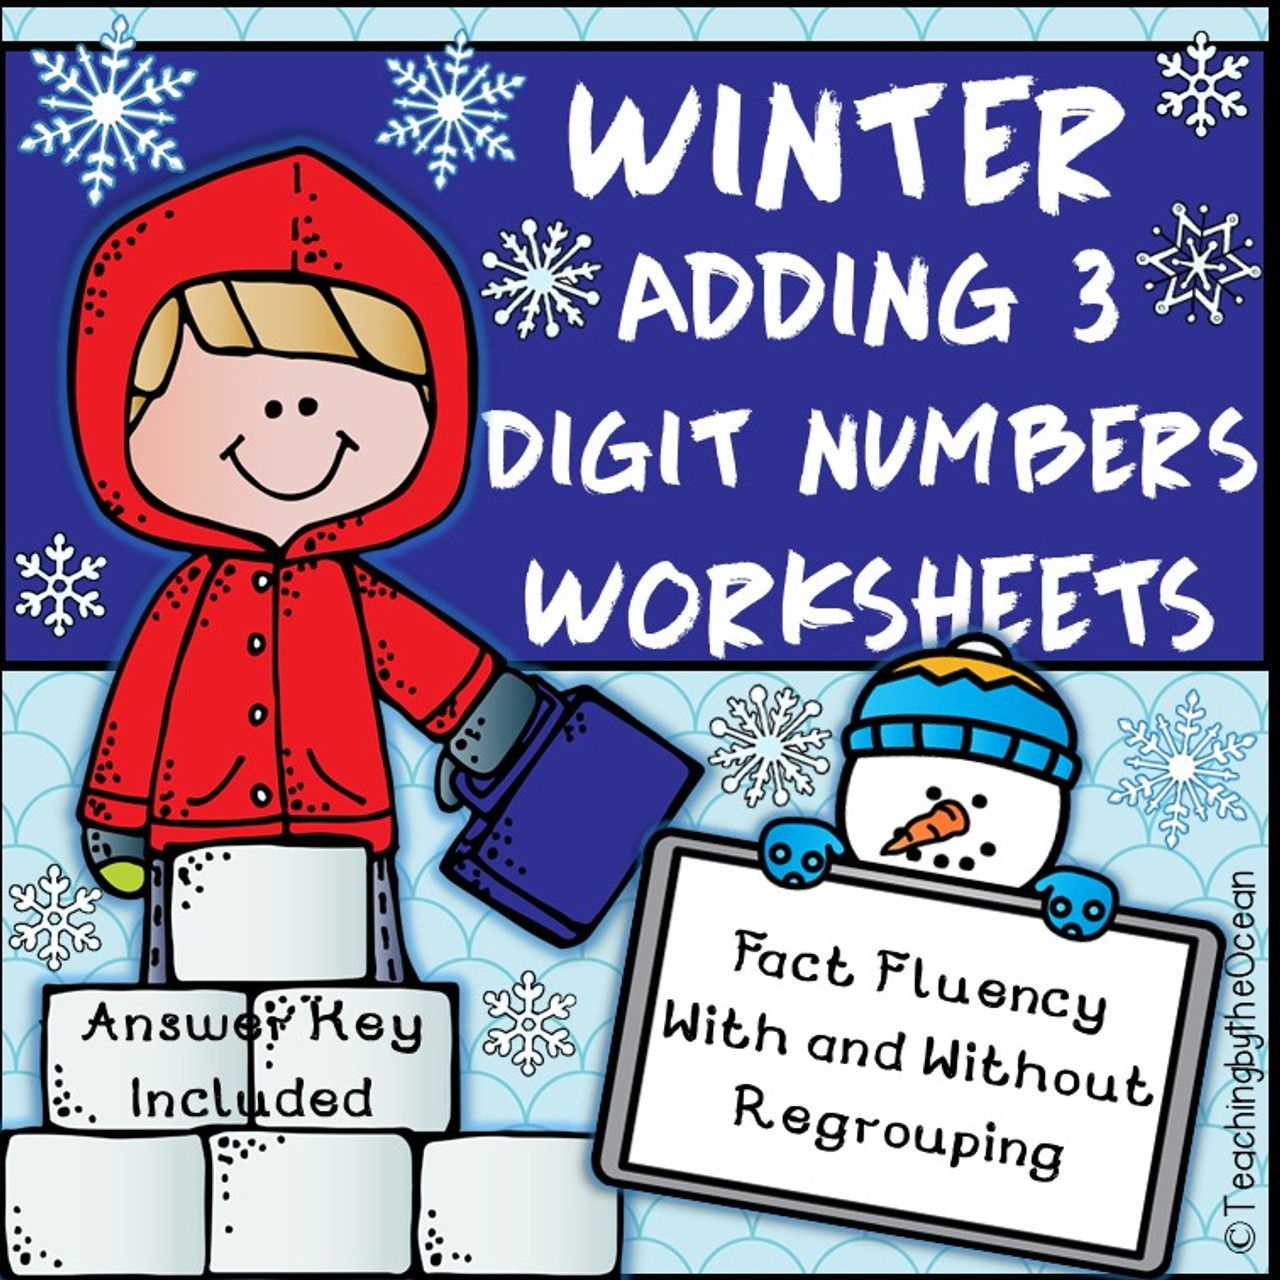 small resolution of Adding 3 Digit Numbers Worksheets - Winter / Christmas Themed - Amped Up  Learning